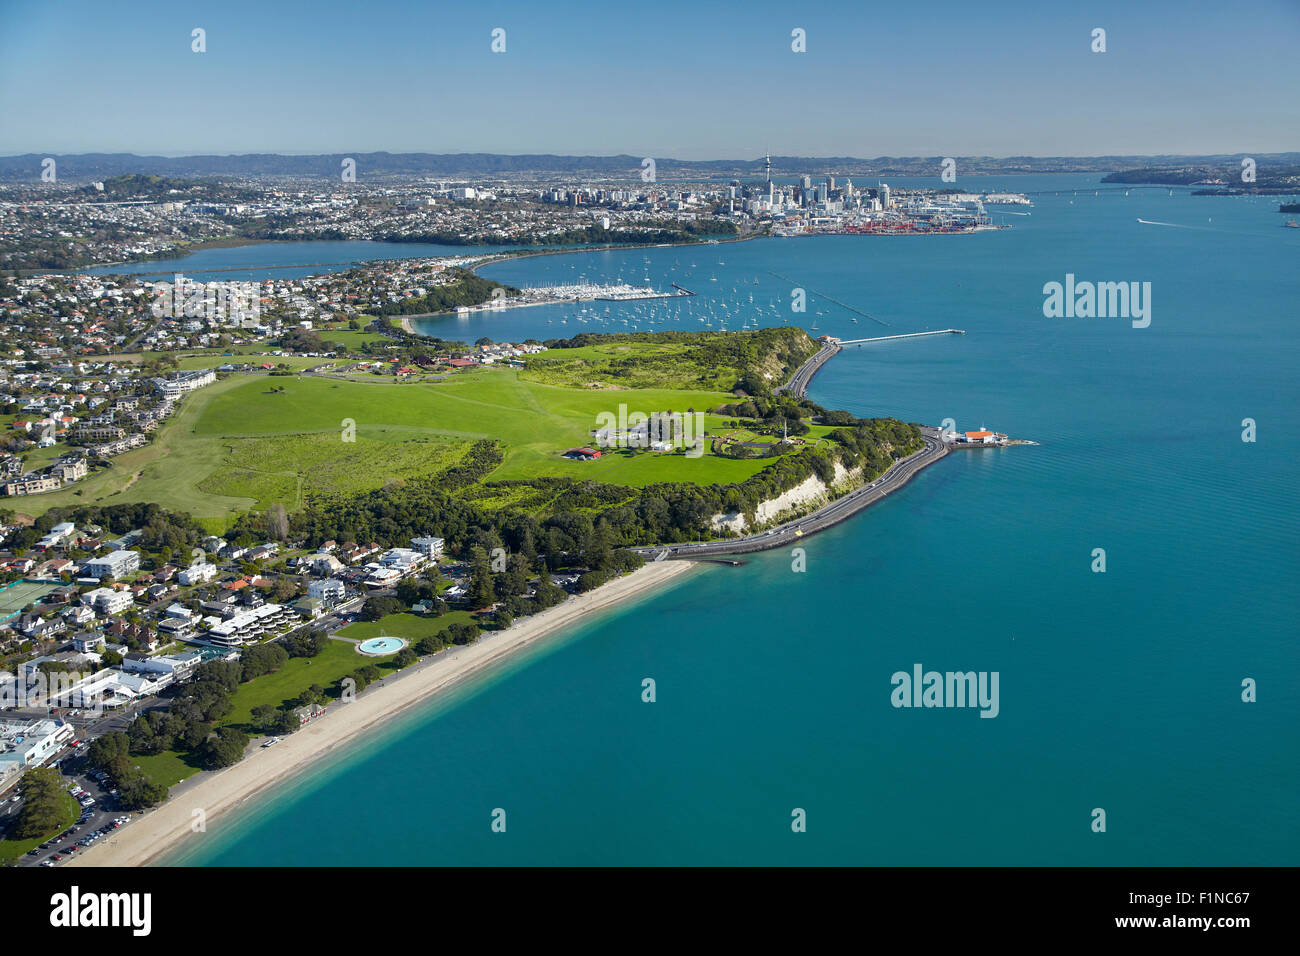 Mission Bay, and Bastion Point, Auckland, North Island, New Zealand - aerial - Stock Image